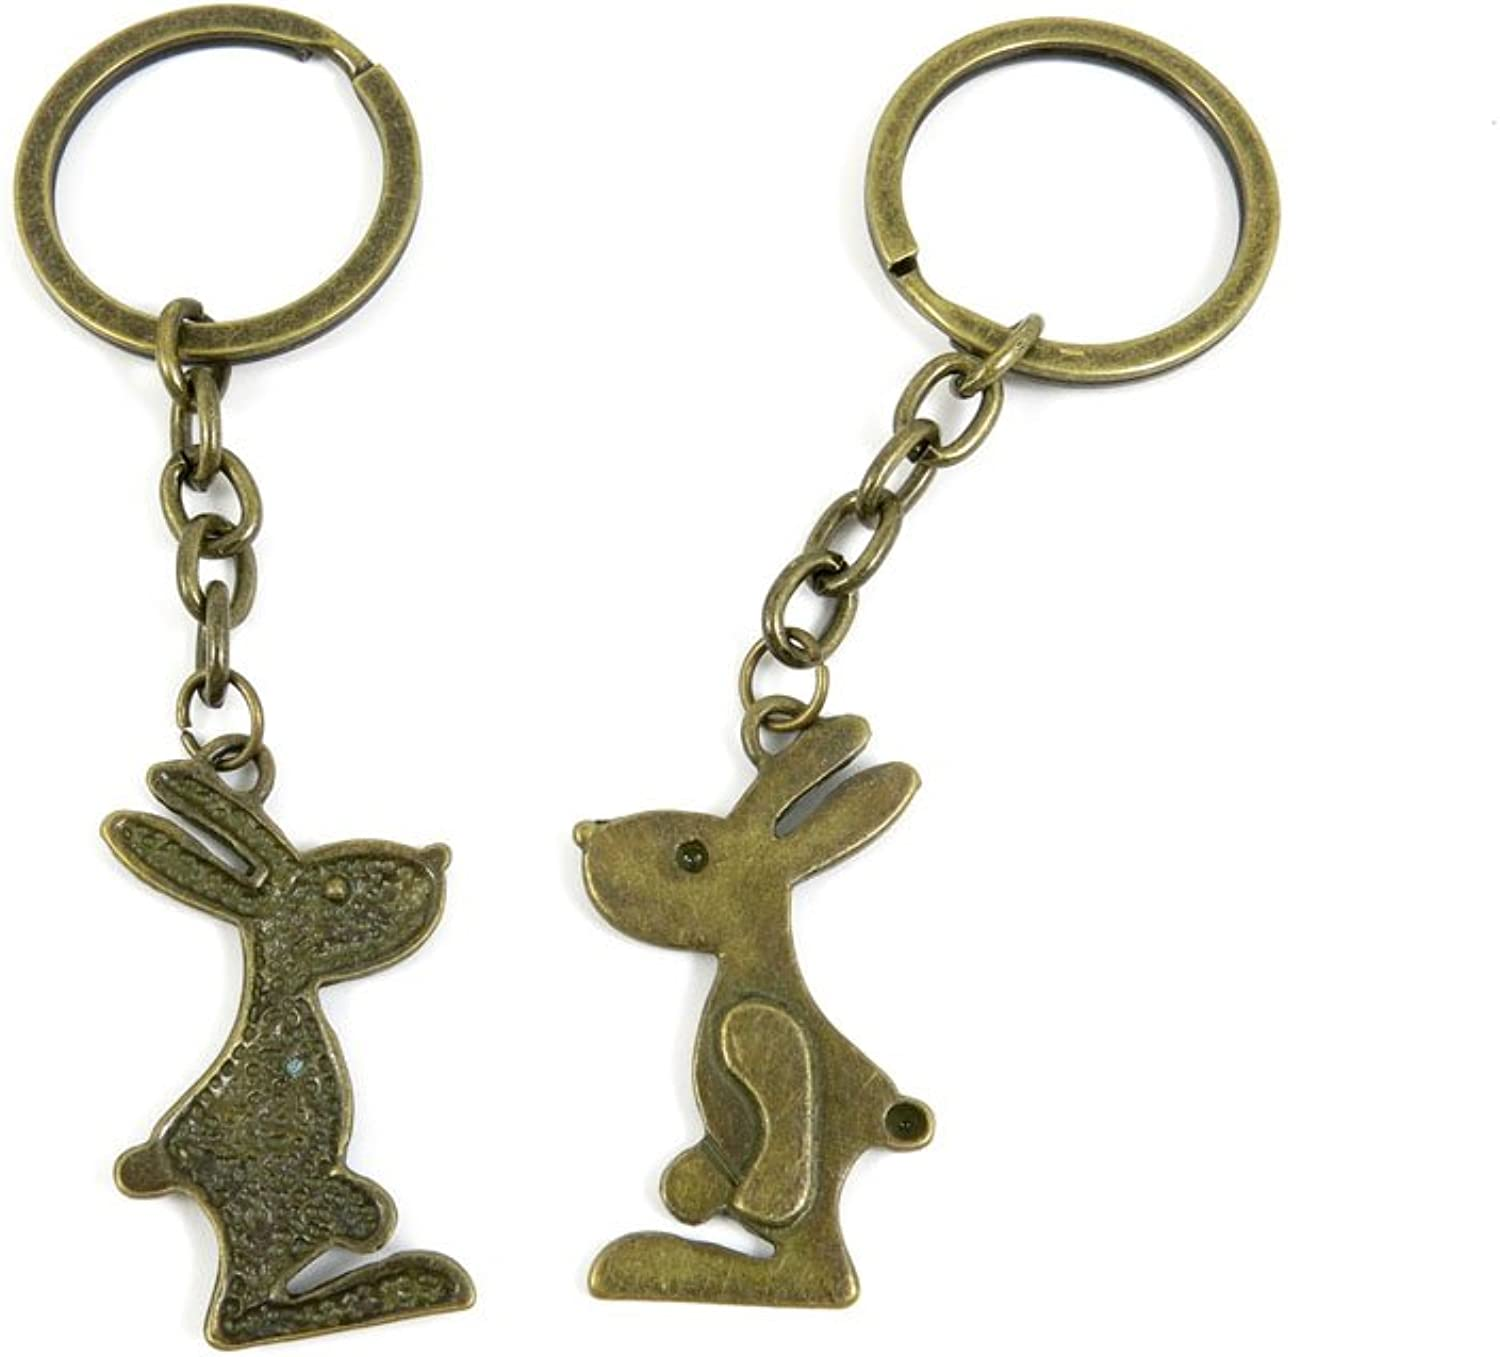 80 PCS Keyring Car Door Key Ring Tag Chain Keychain Wholesale Suppliers Charms Handmade H3NT8 Rabbit Playboy